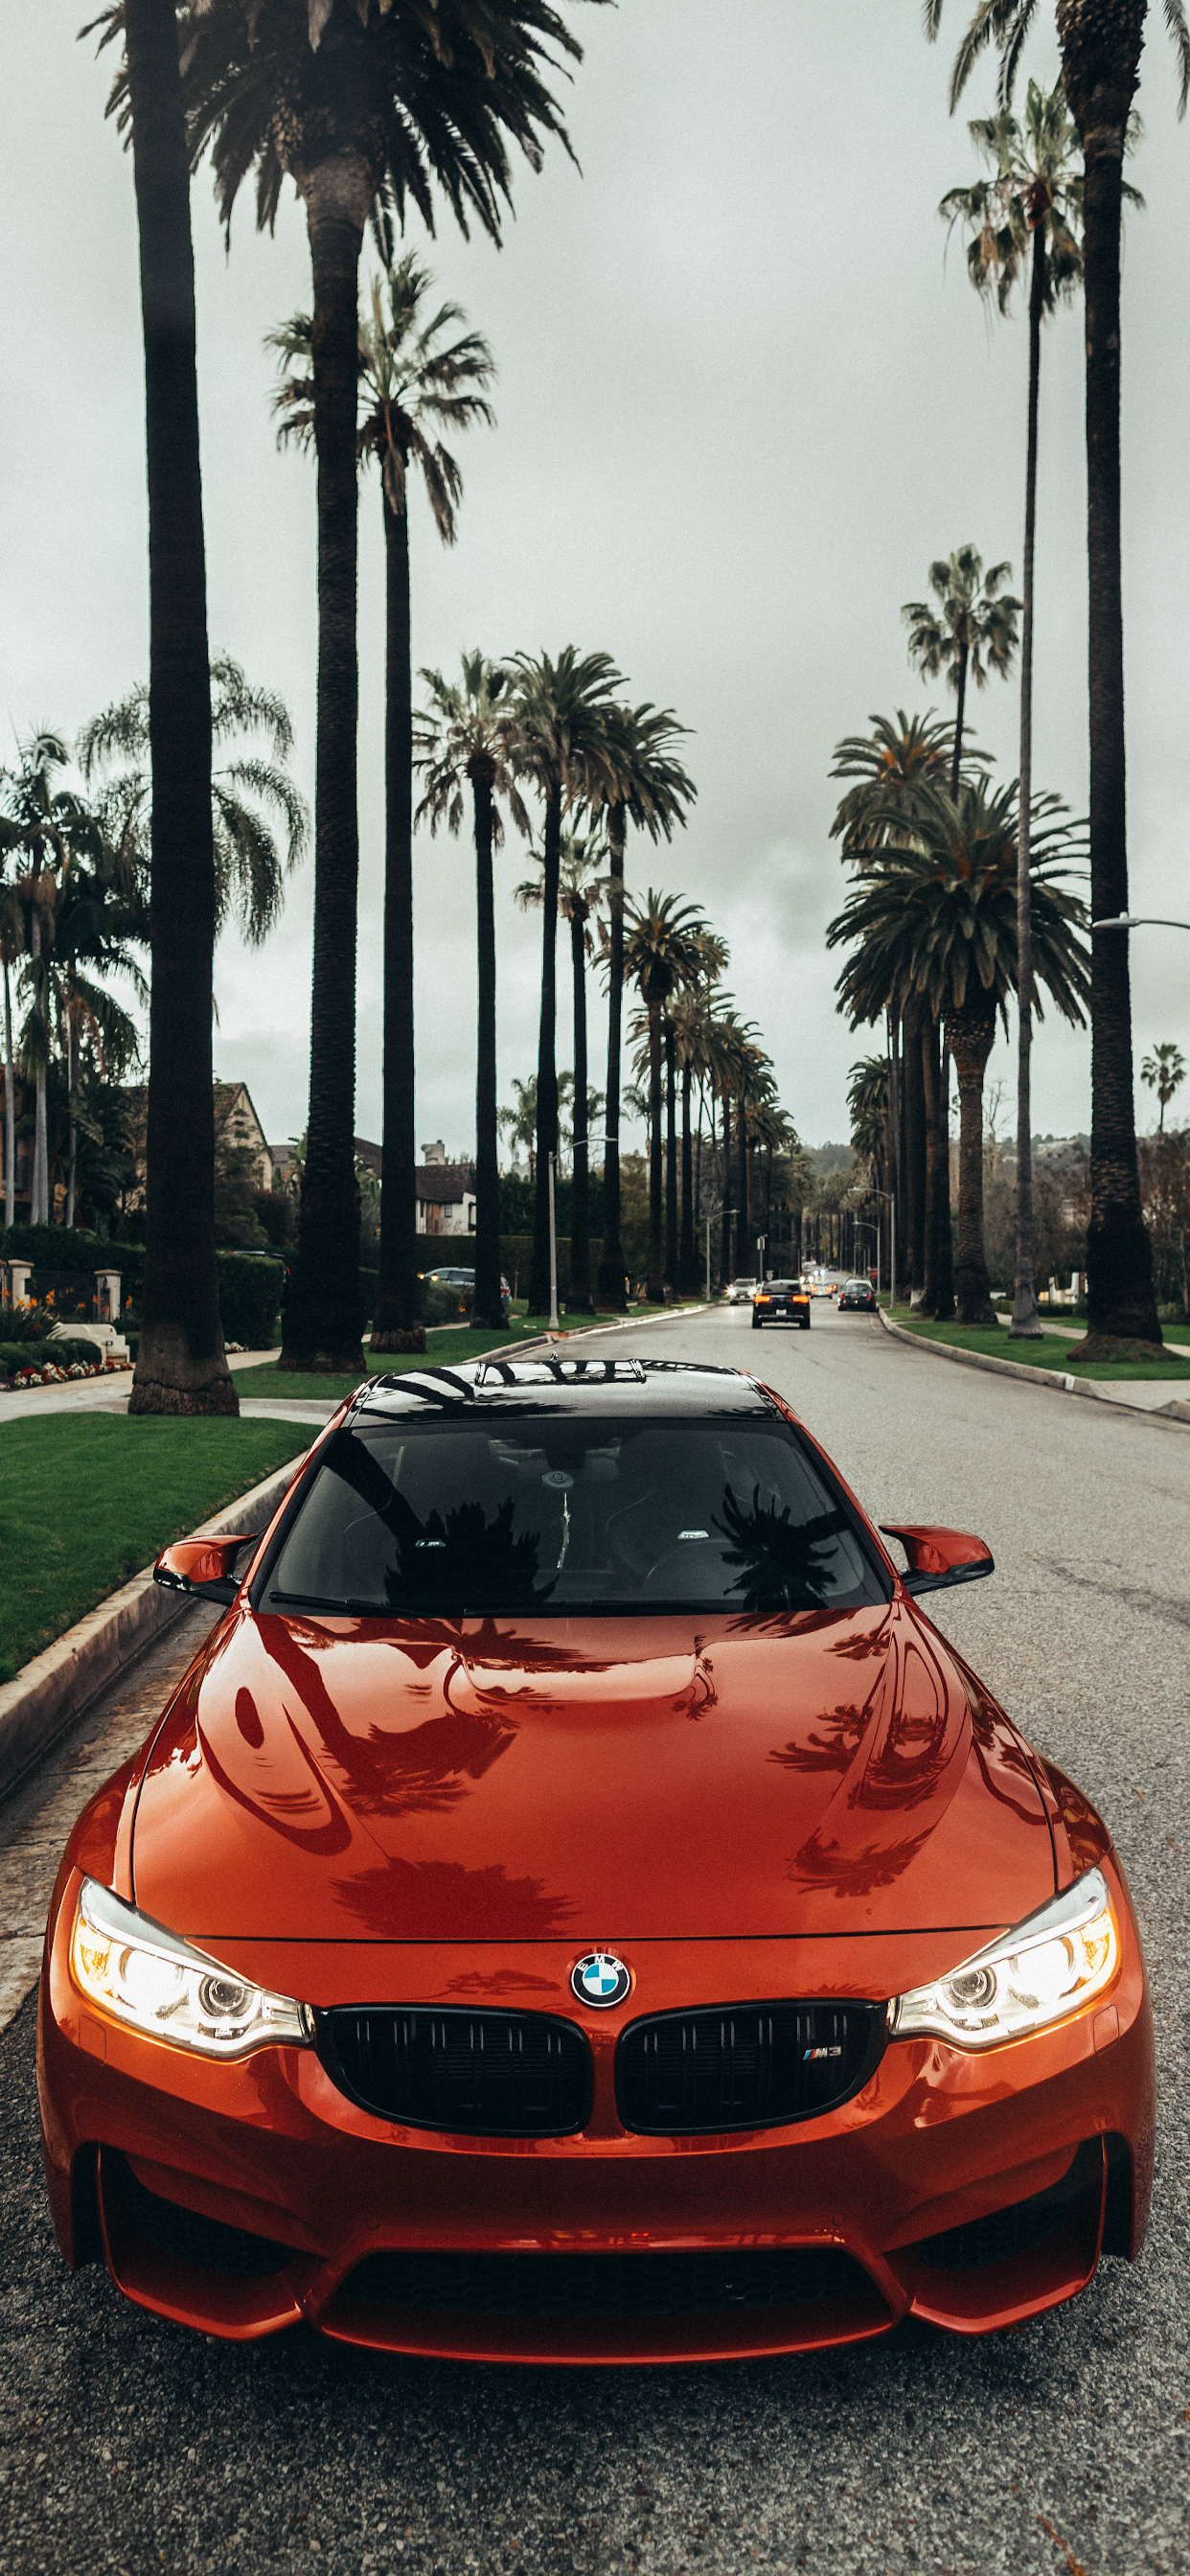 iPhone wallpapers cars bmw palm tree Cars